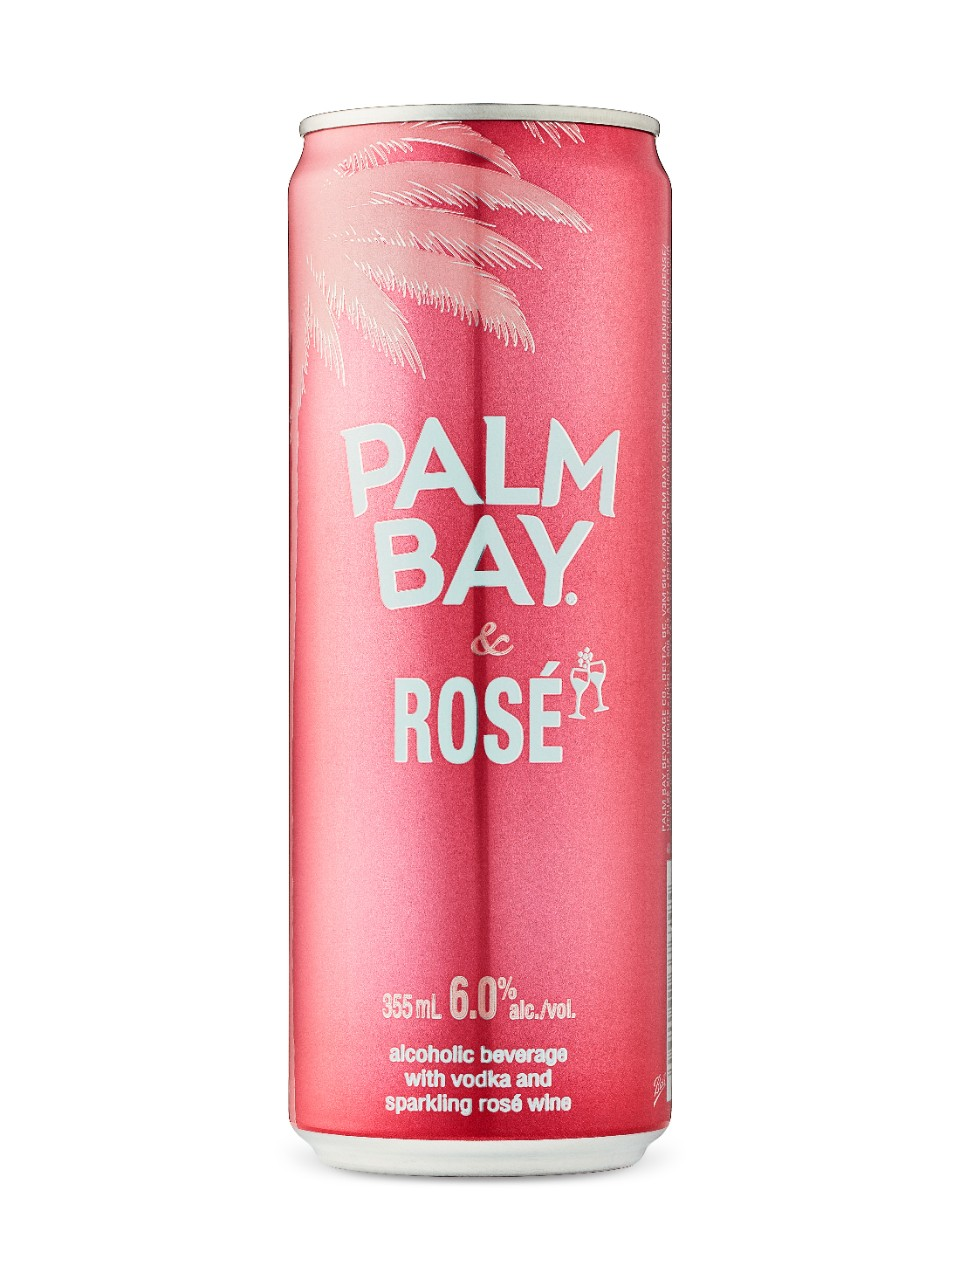 Palm Bay Rosé from LCBO